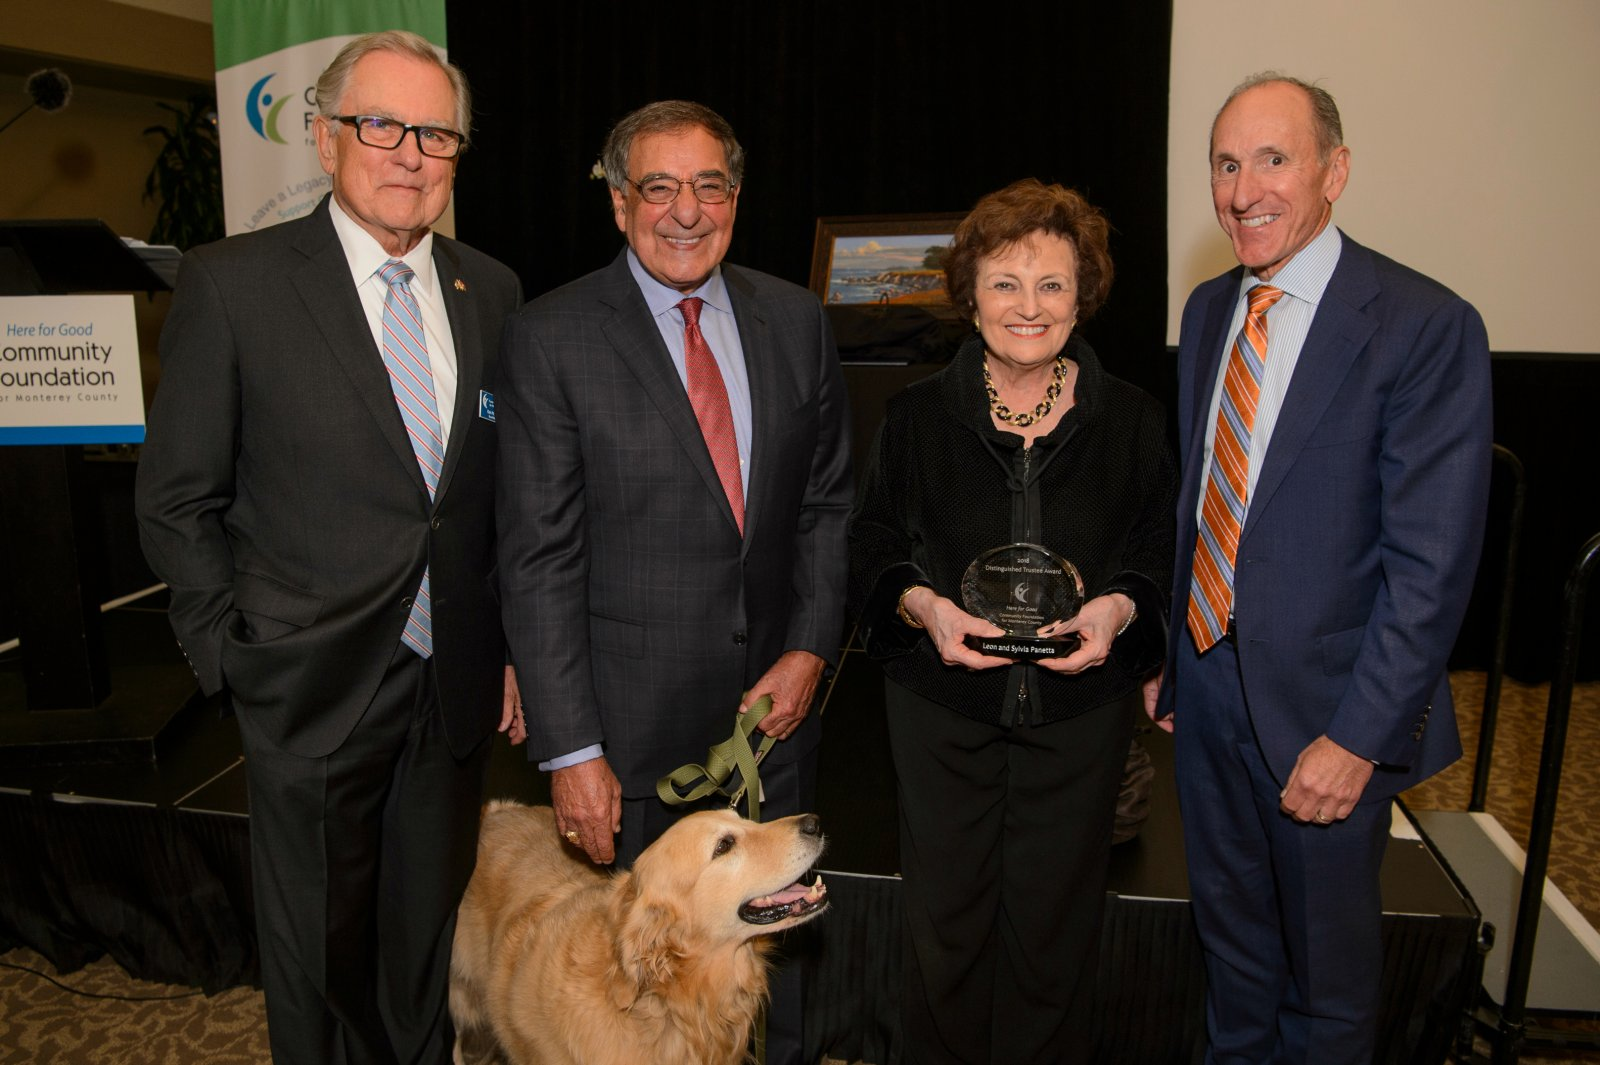 Panettas Honored at 2018 Celebration of Philanthropy